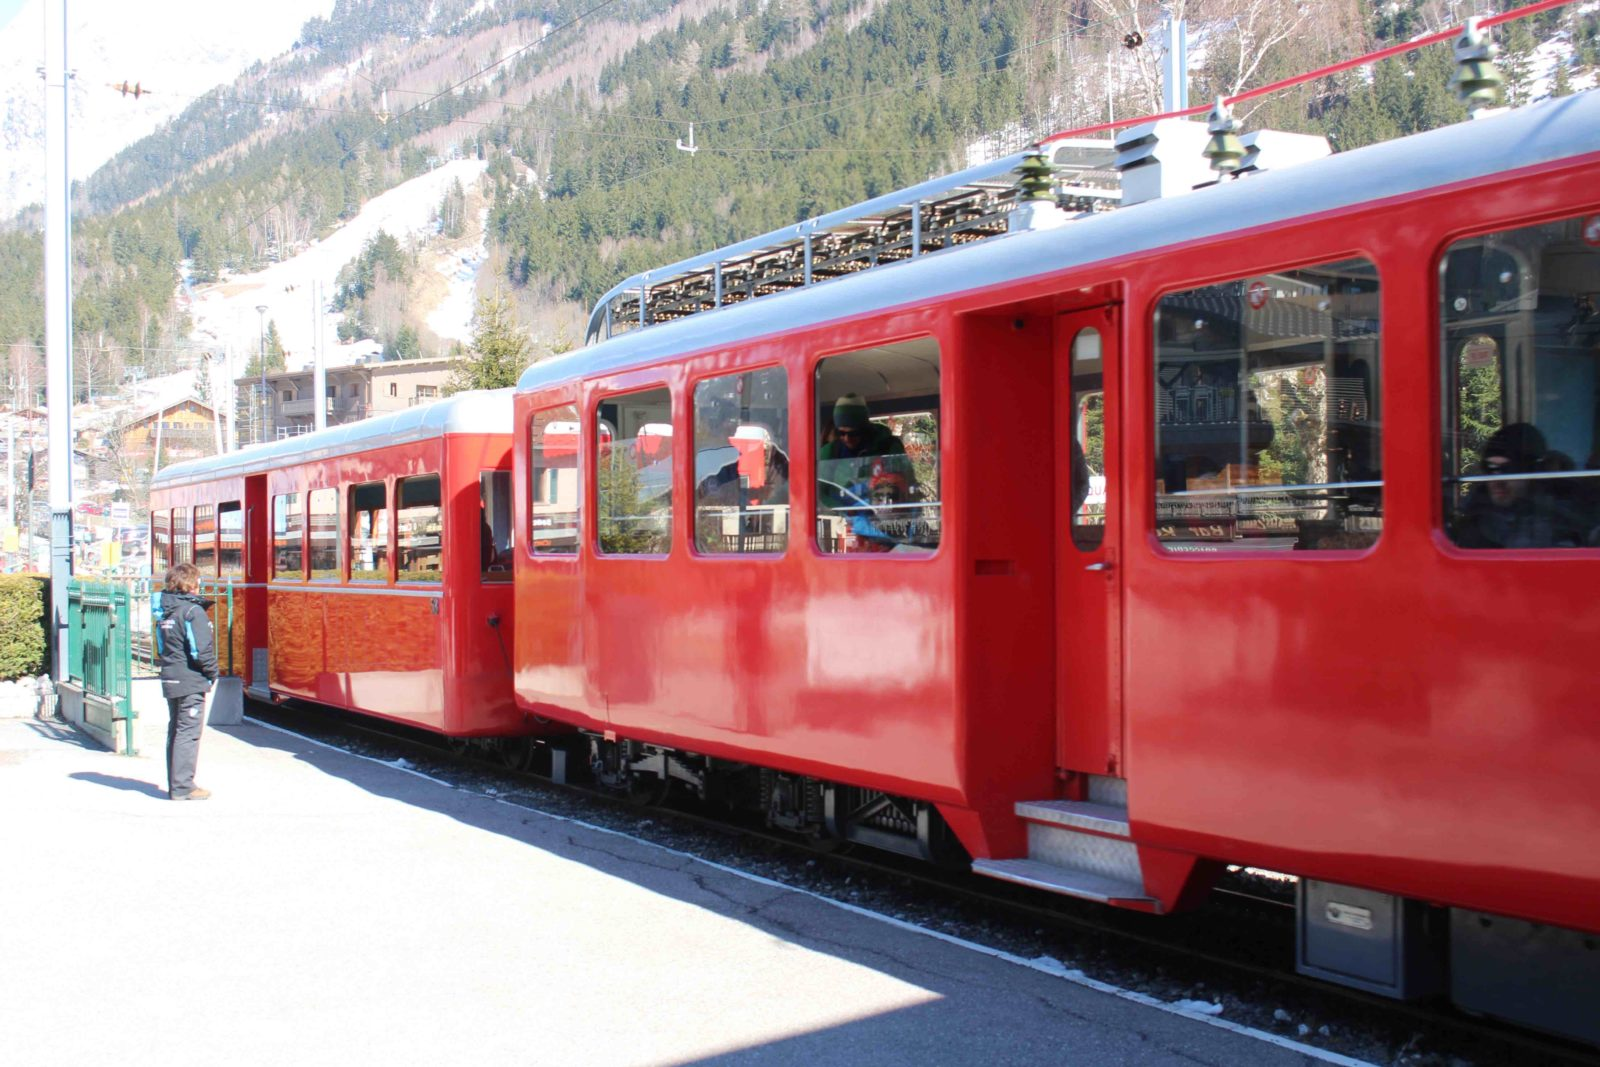 Chamonix le train rouge du Montenvers